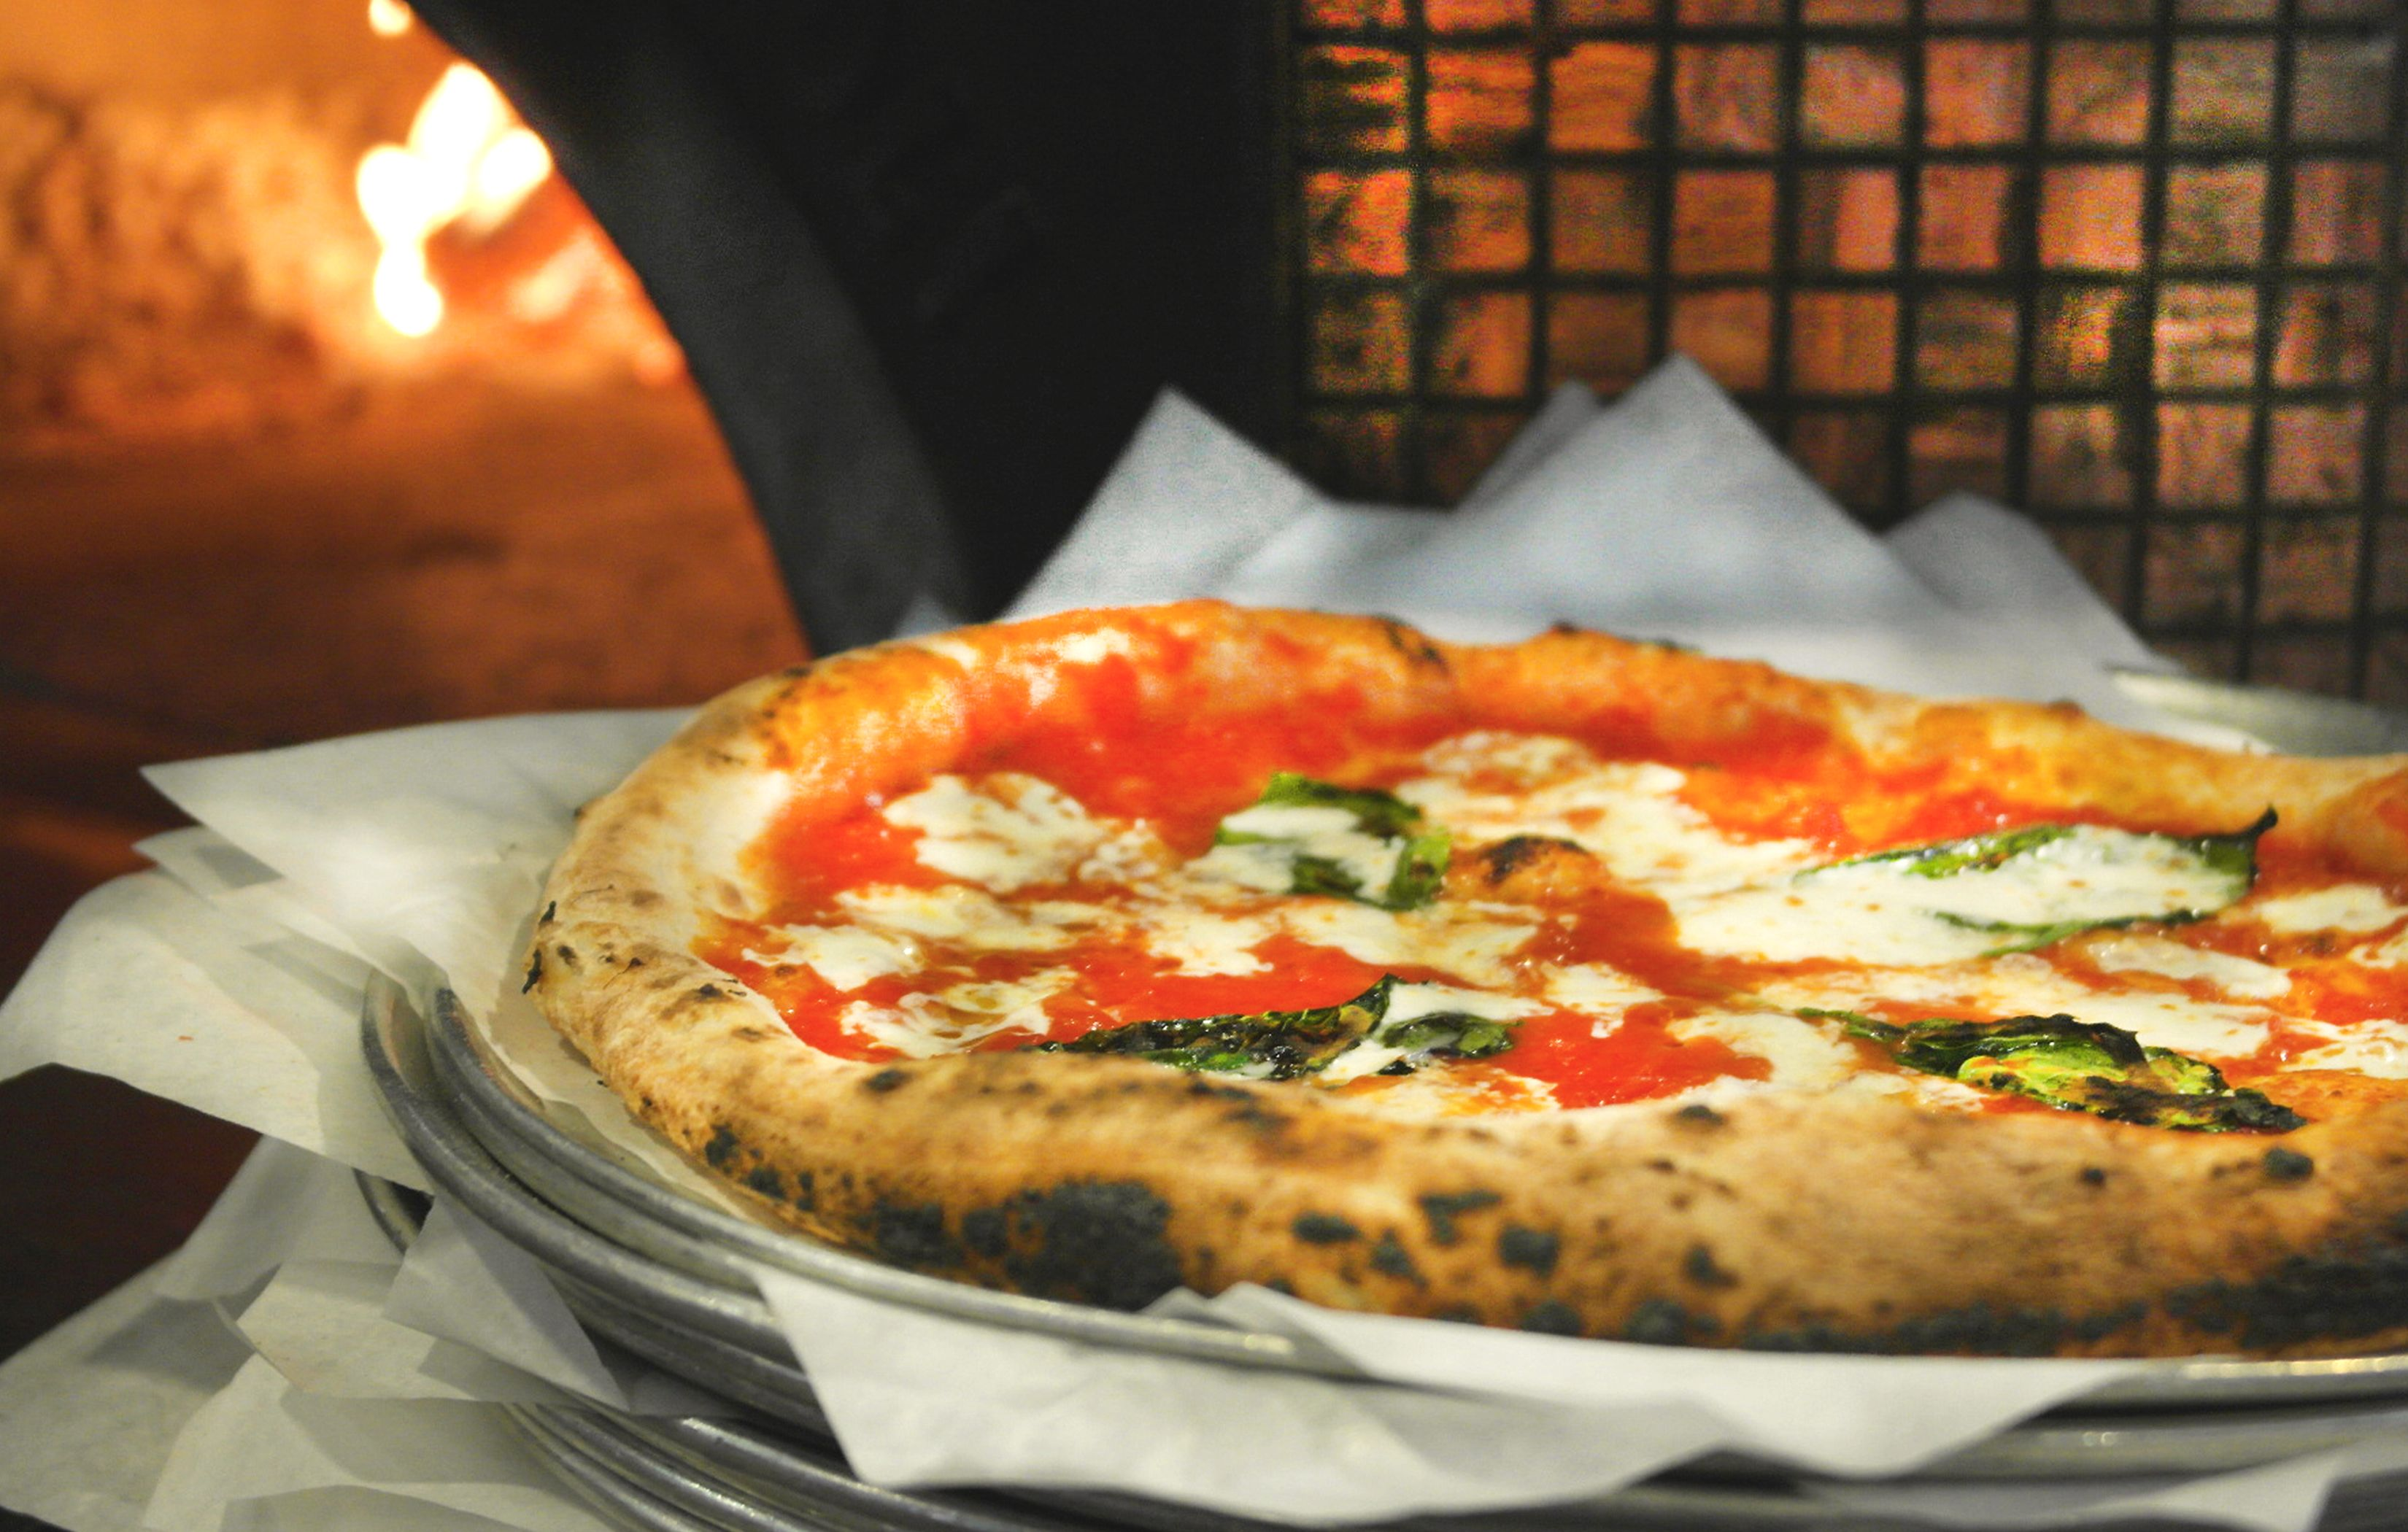 pizza bocca lupo at san pedro square market authentic wood fired